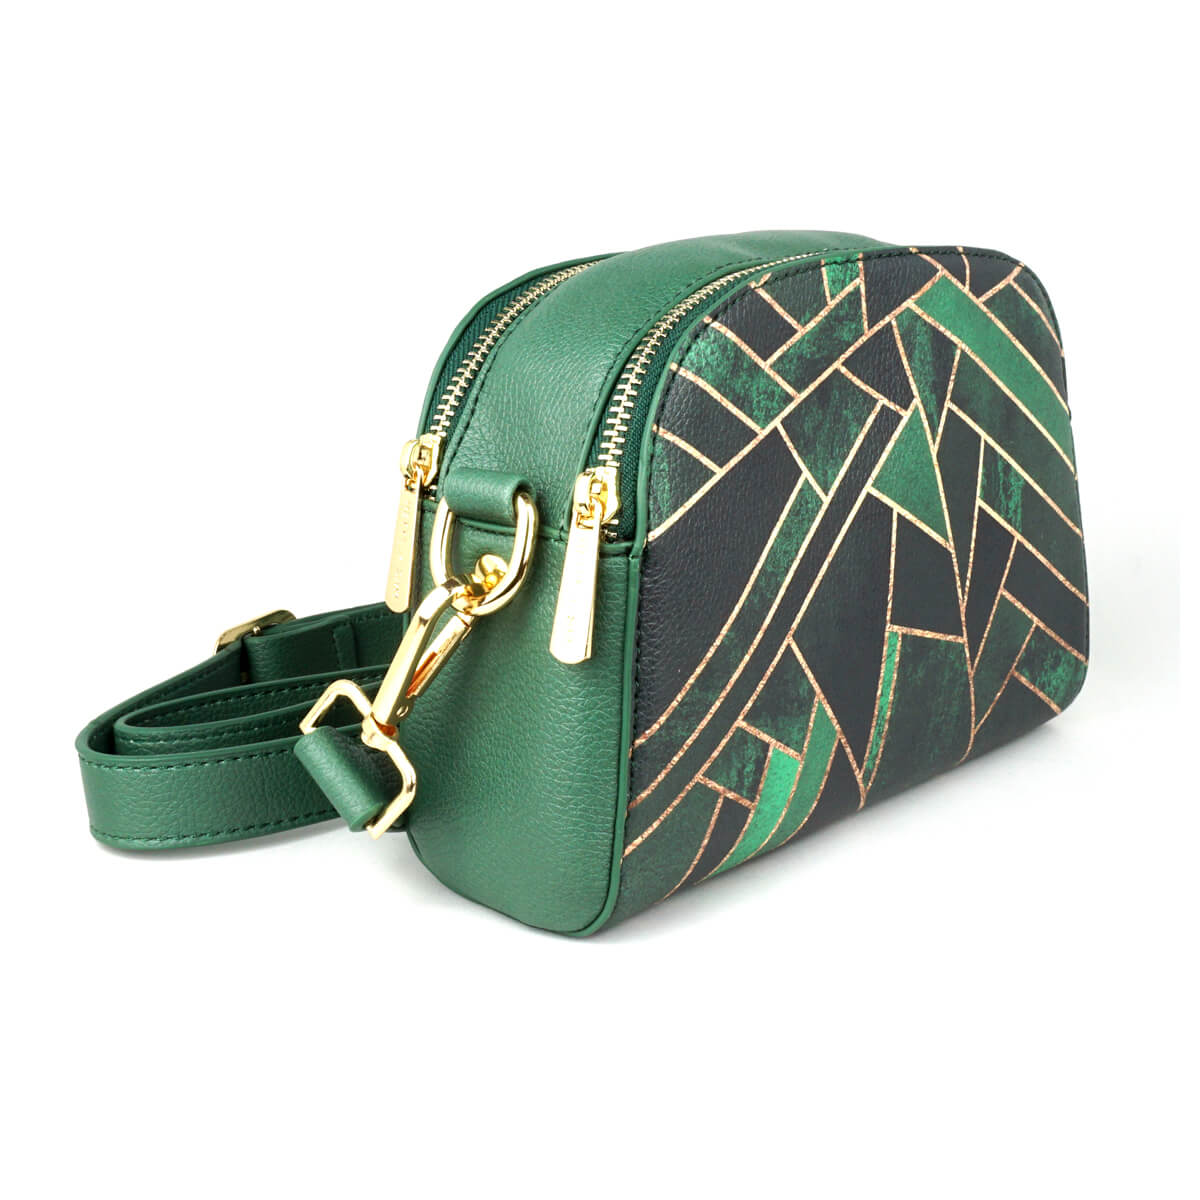 Emerald Night - Womens Luxury Vegan Cross Body Shoulder Bag in Black ... 0232038de73a6